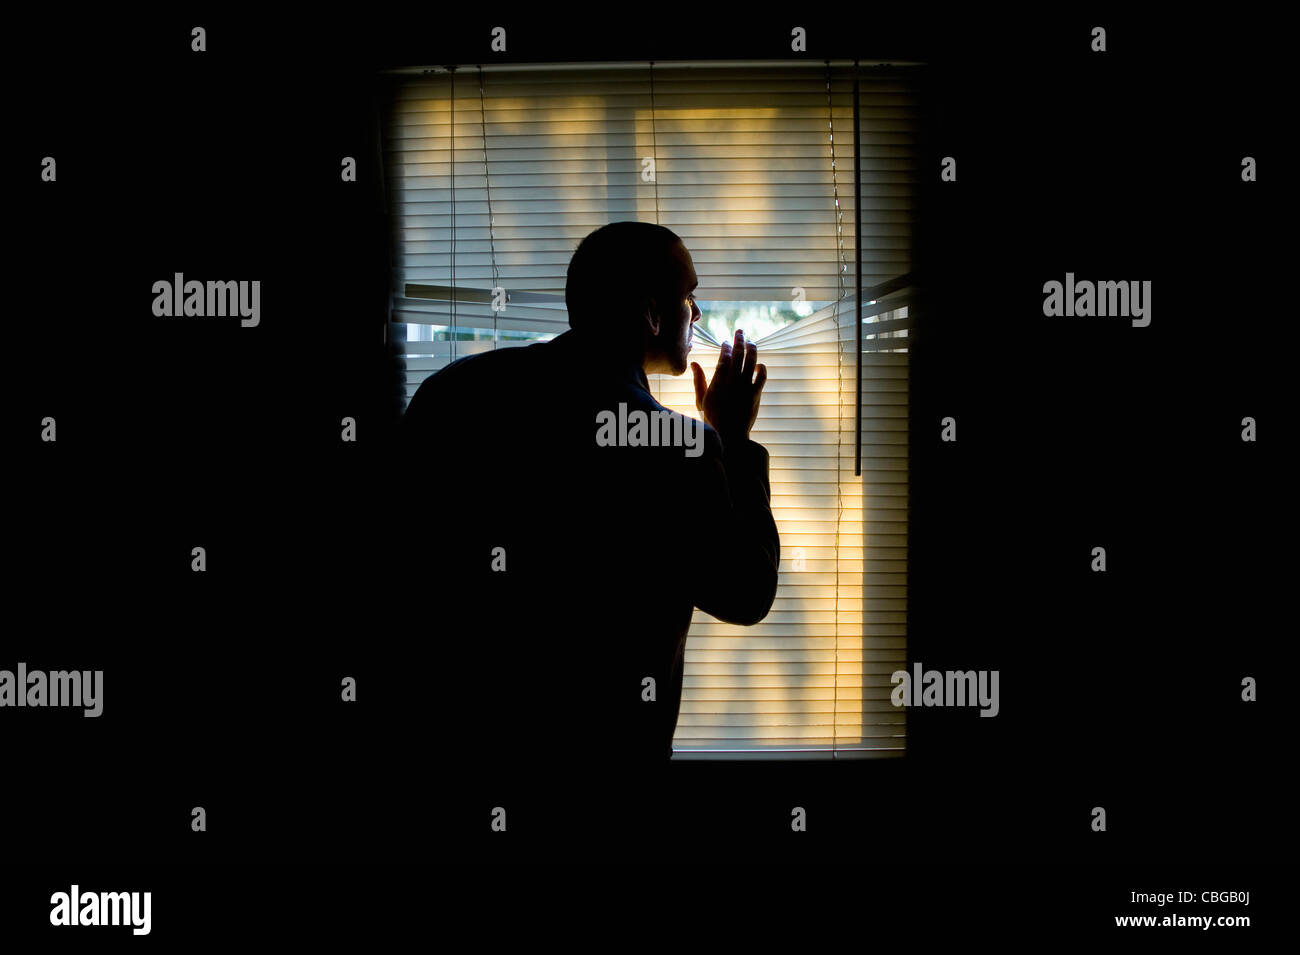 A man peeking outdoors through the blinds of a darkened room - Stock Image